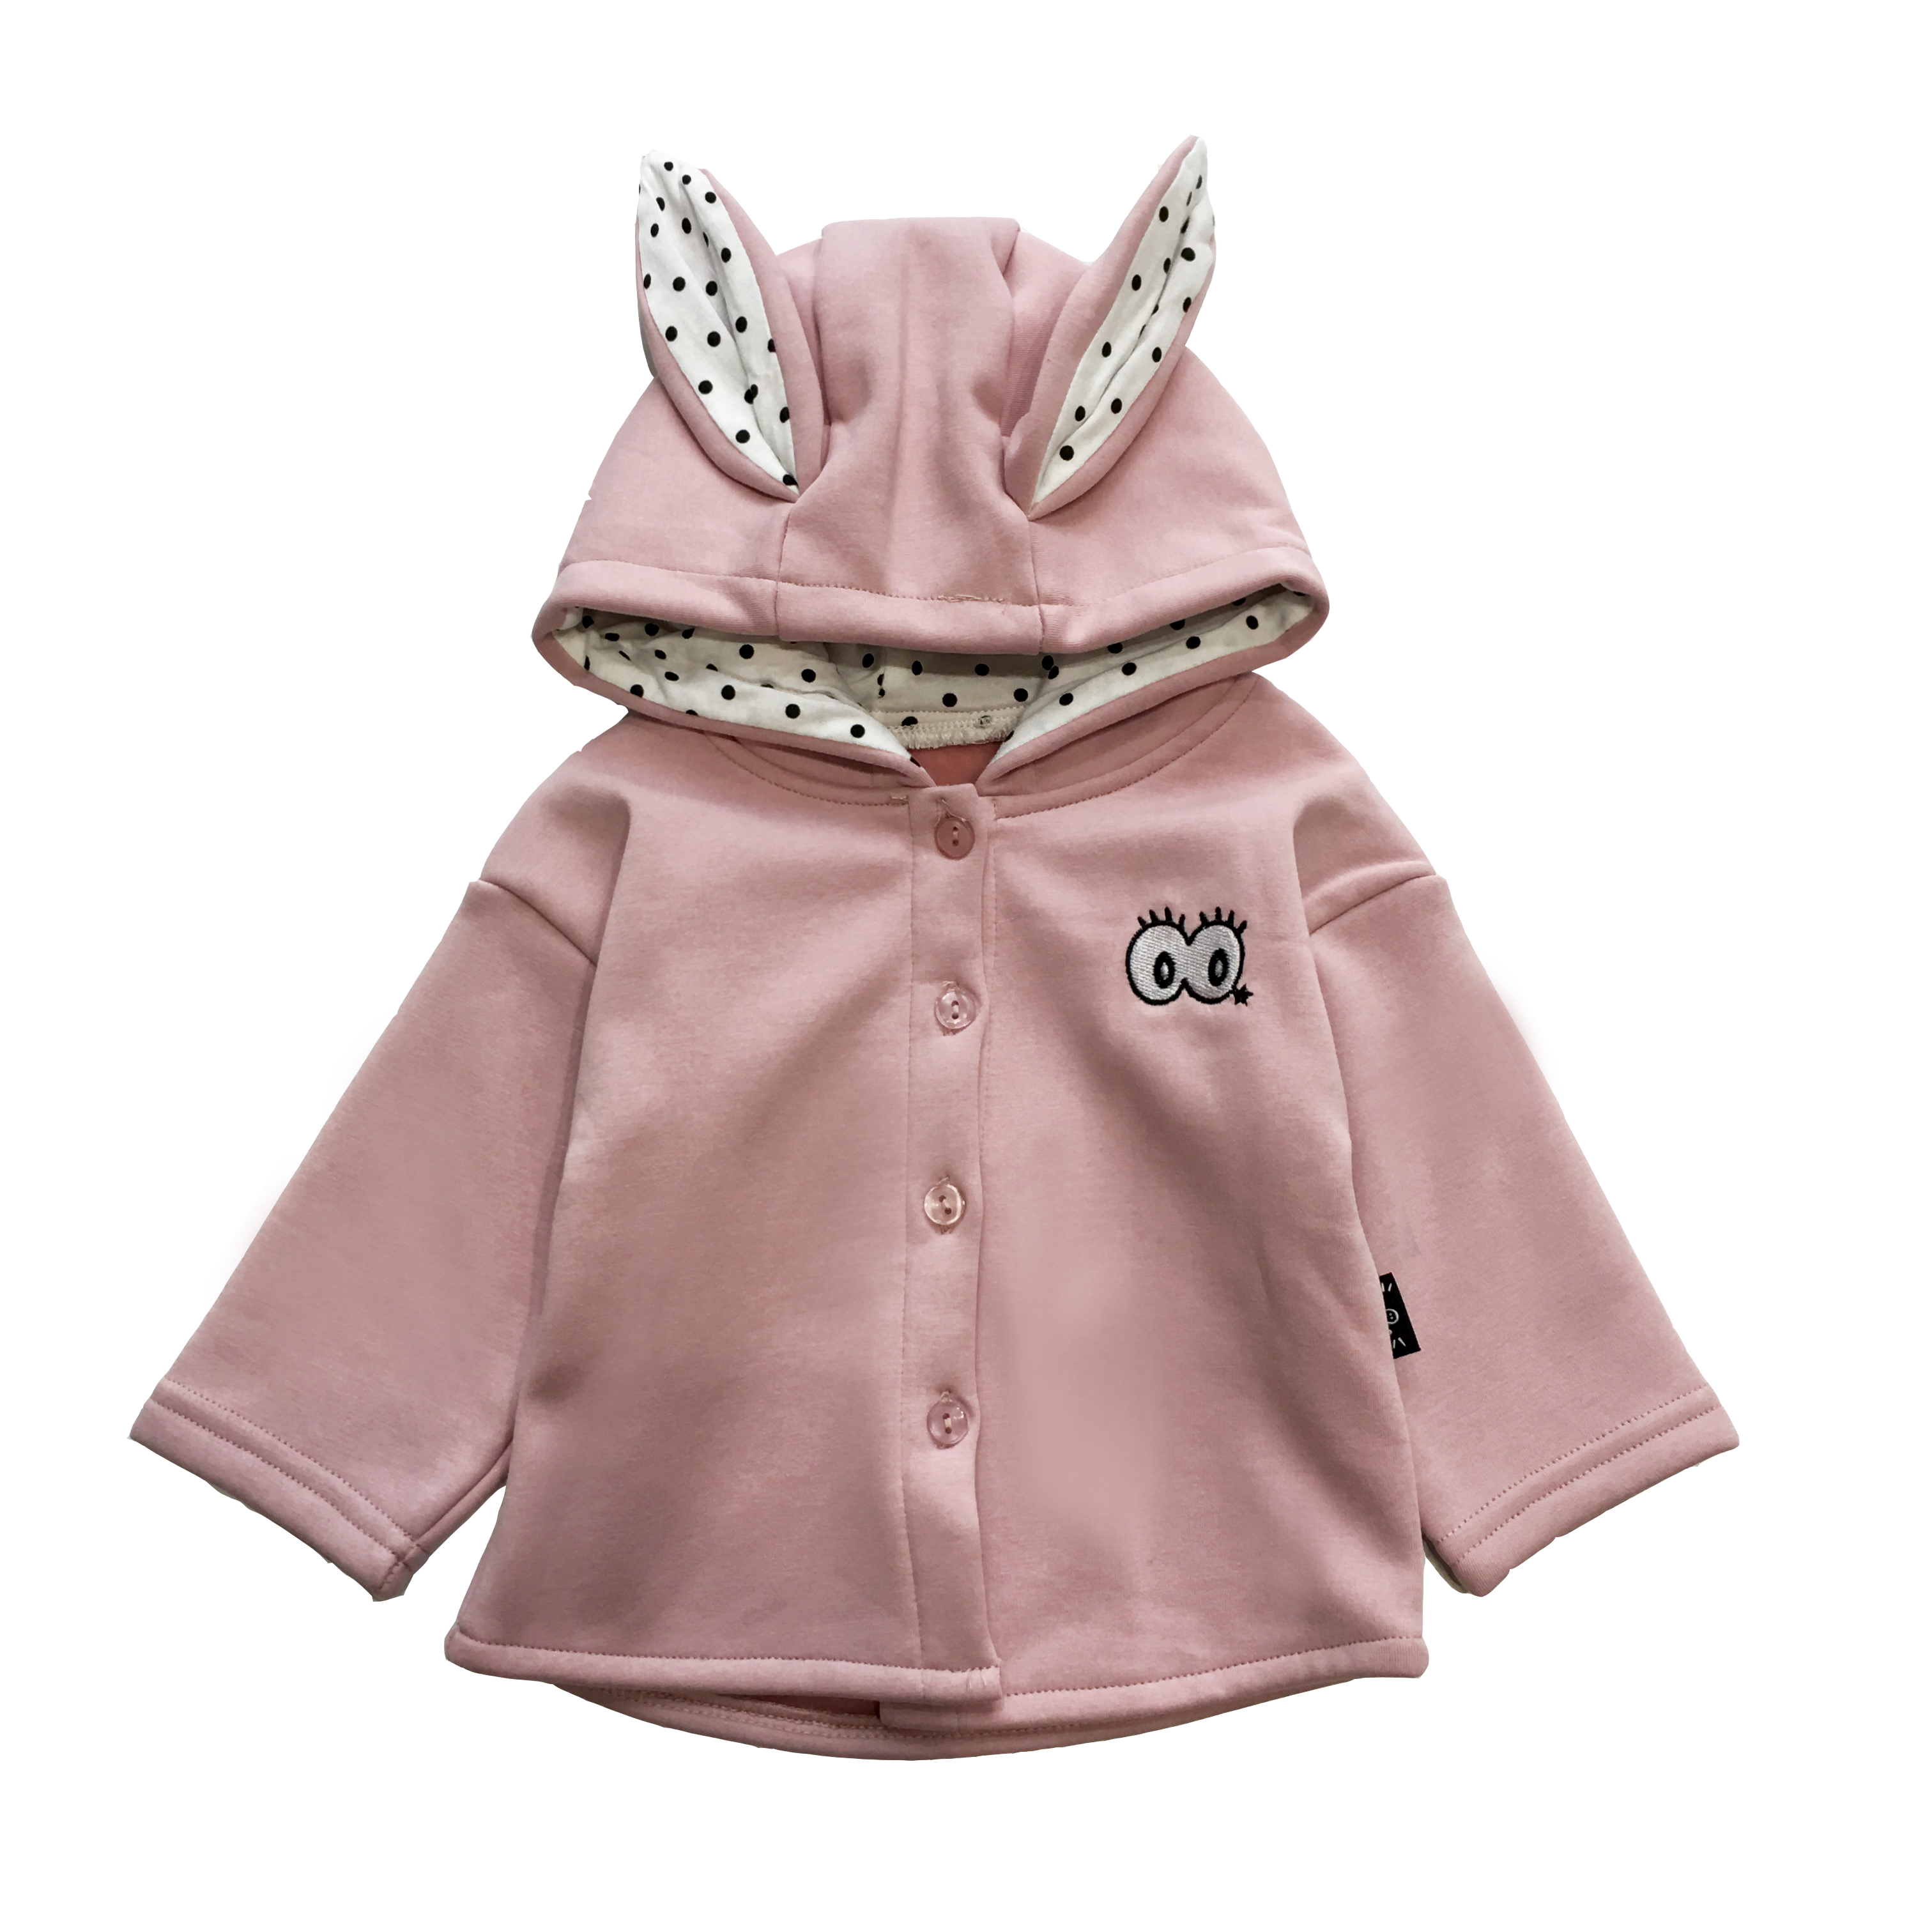 LUSON mom and baby infant and children's wear velvet jacket winter girl baby rabbit ears Cardigan Jacket Coat Jacket